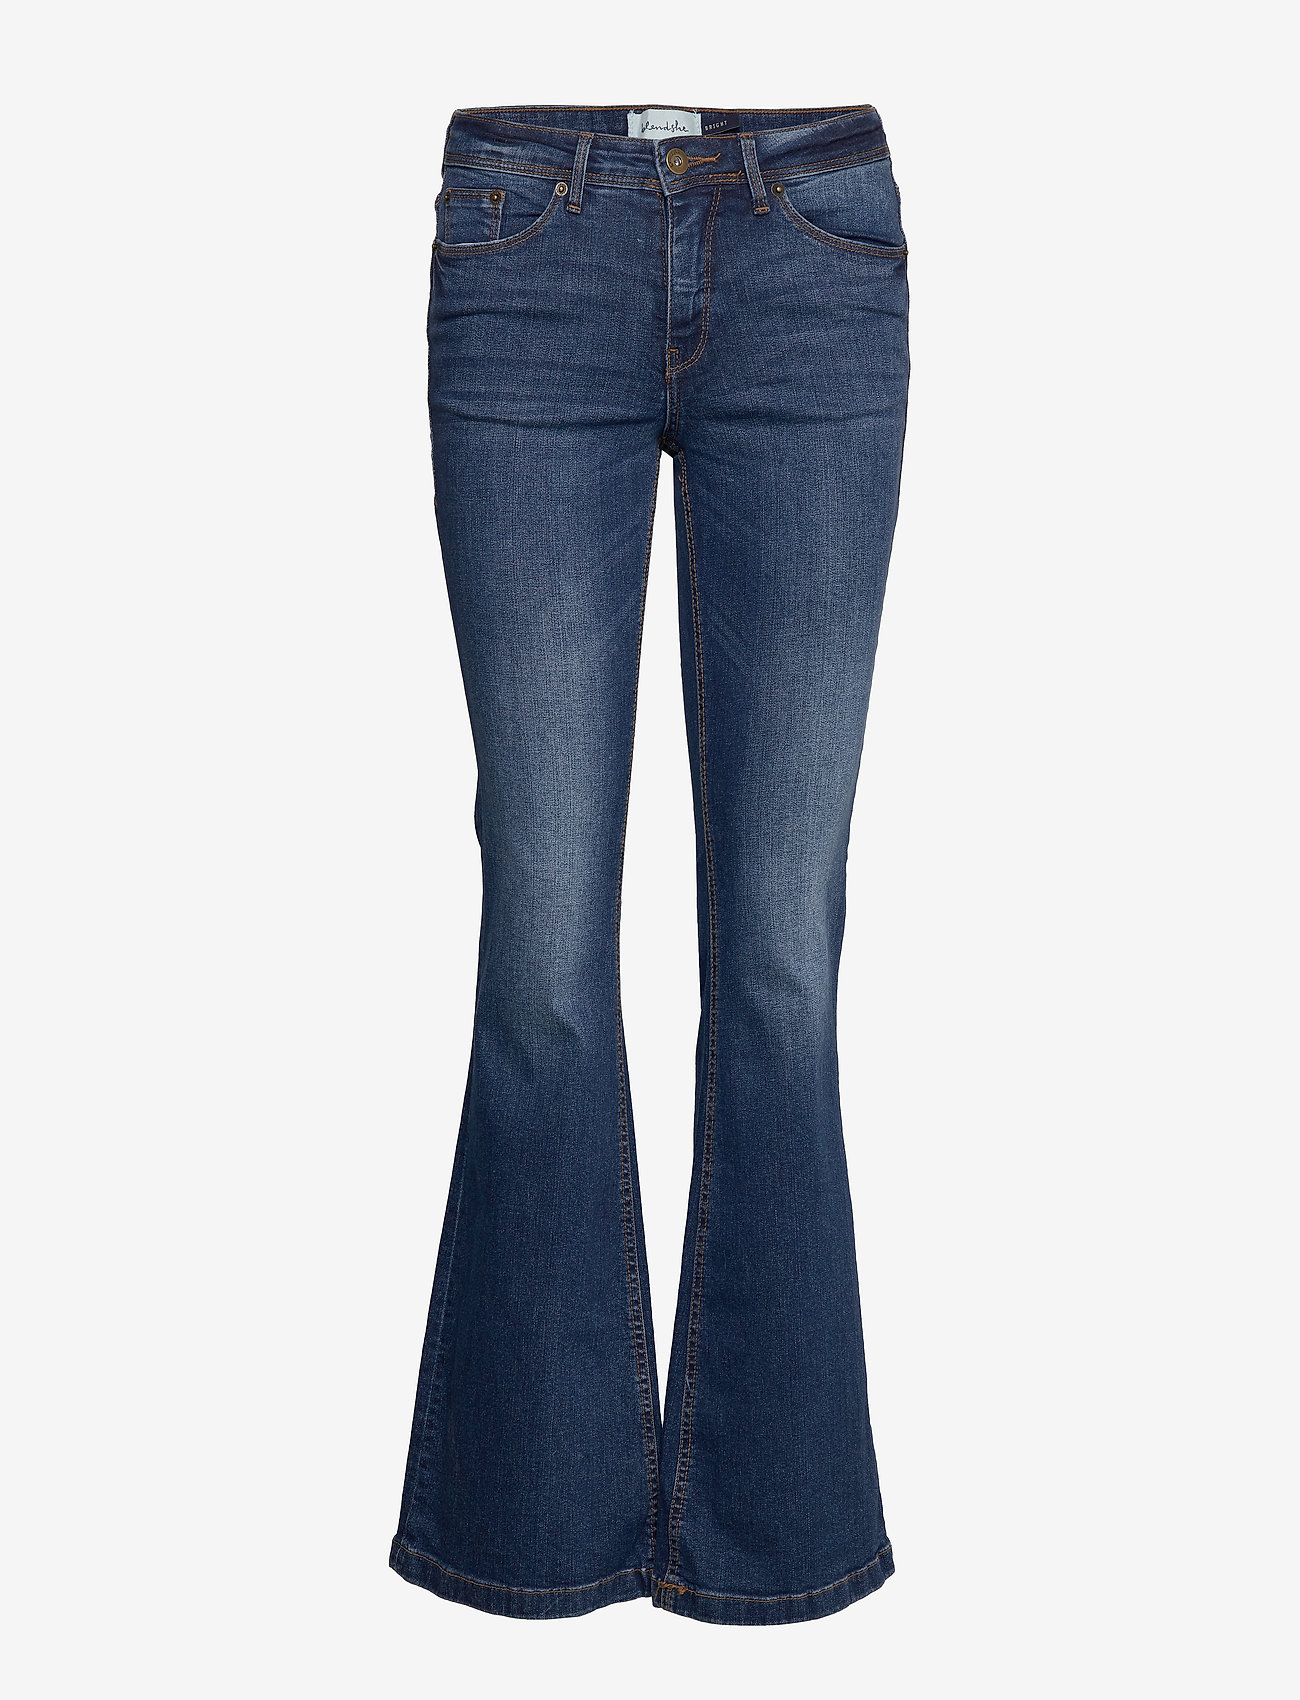 Blend She - BSWINT BRIGHT FLARED JE - flared jeans - indigo blue washed - 0